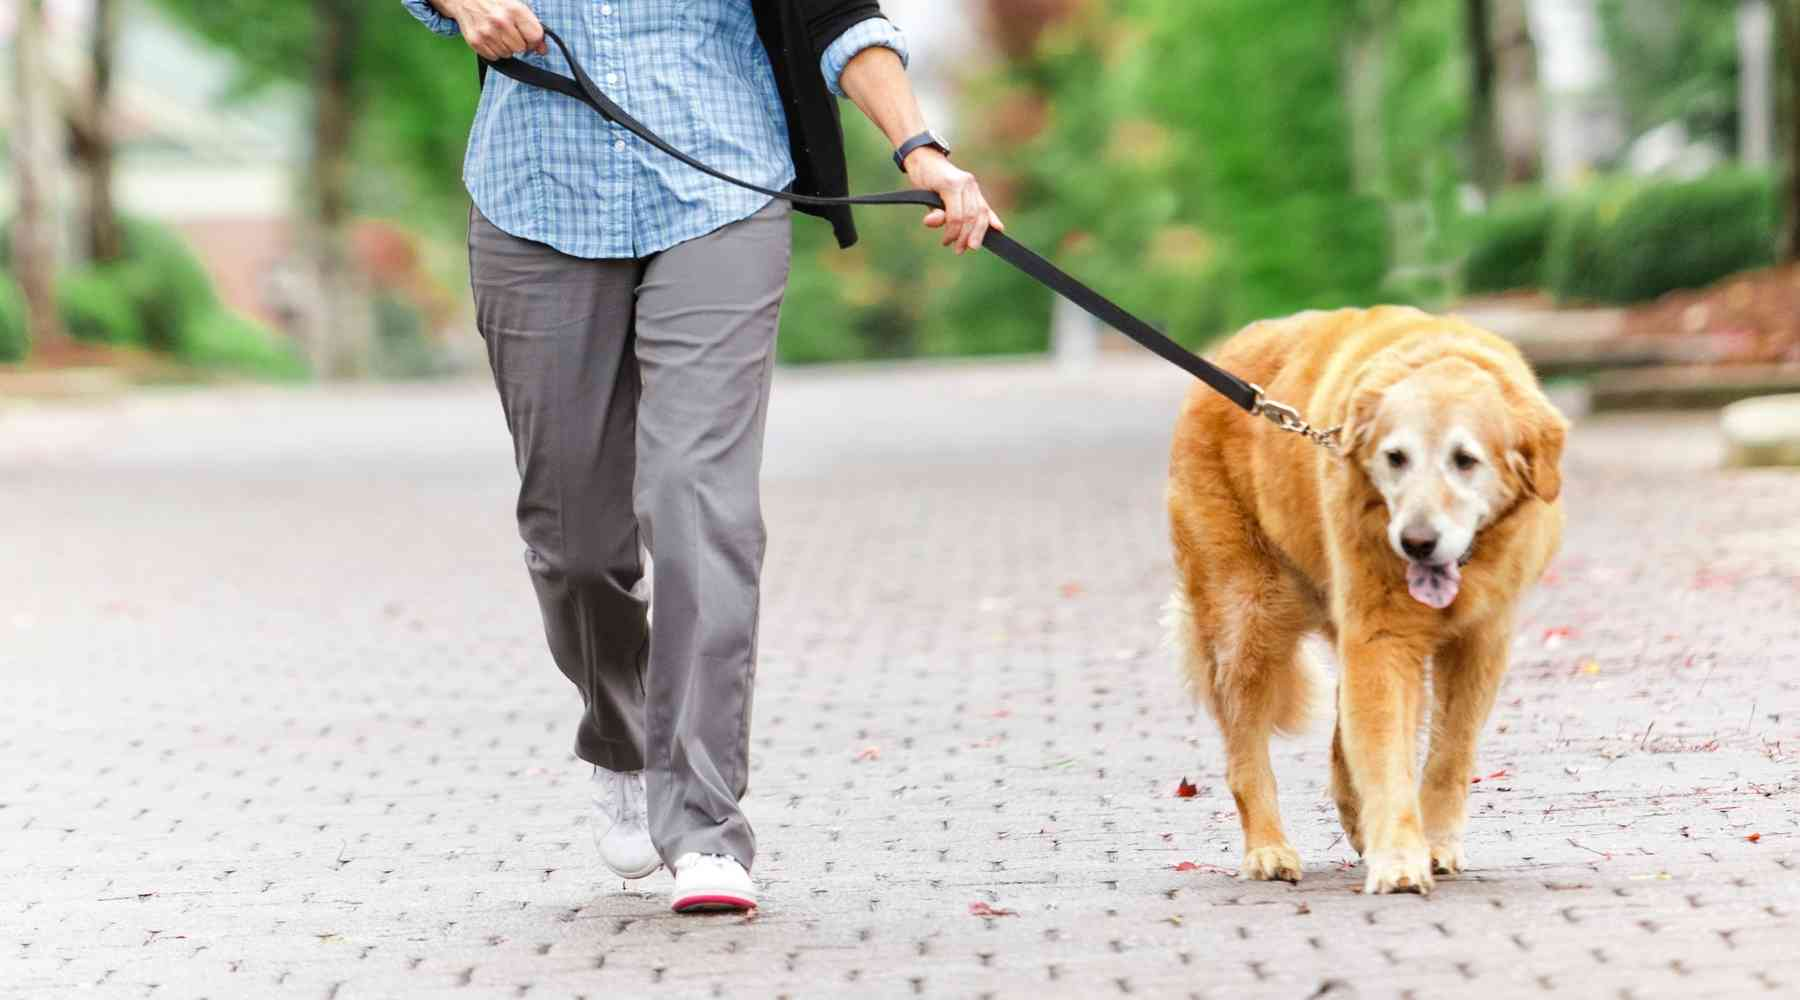 How to Make Money Without a Job - Dog Walking